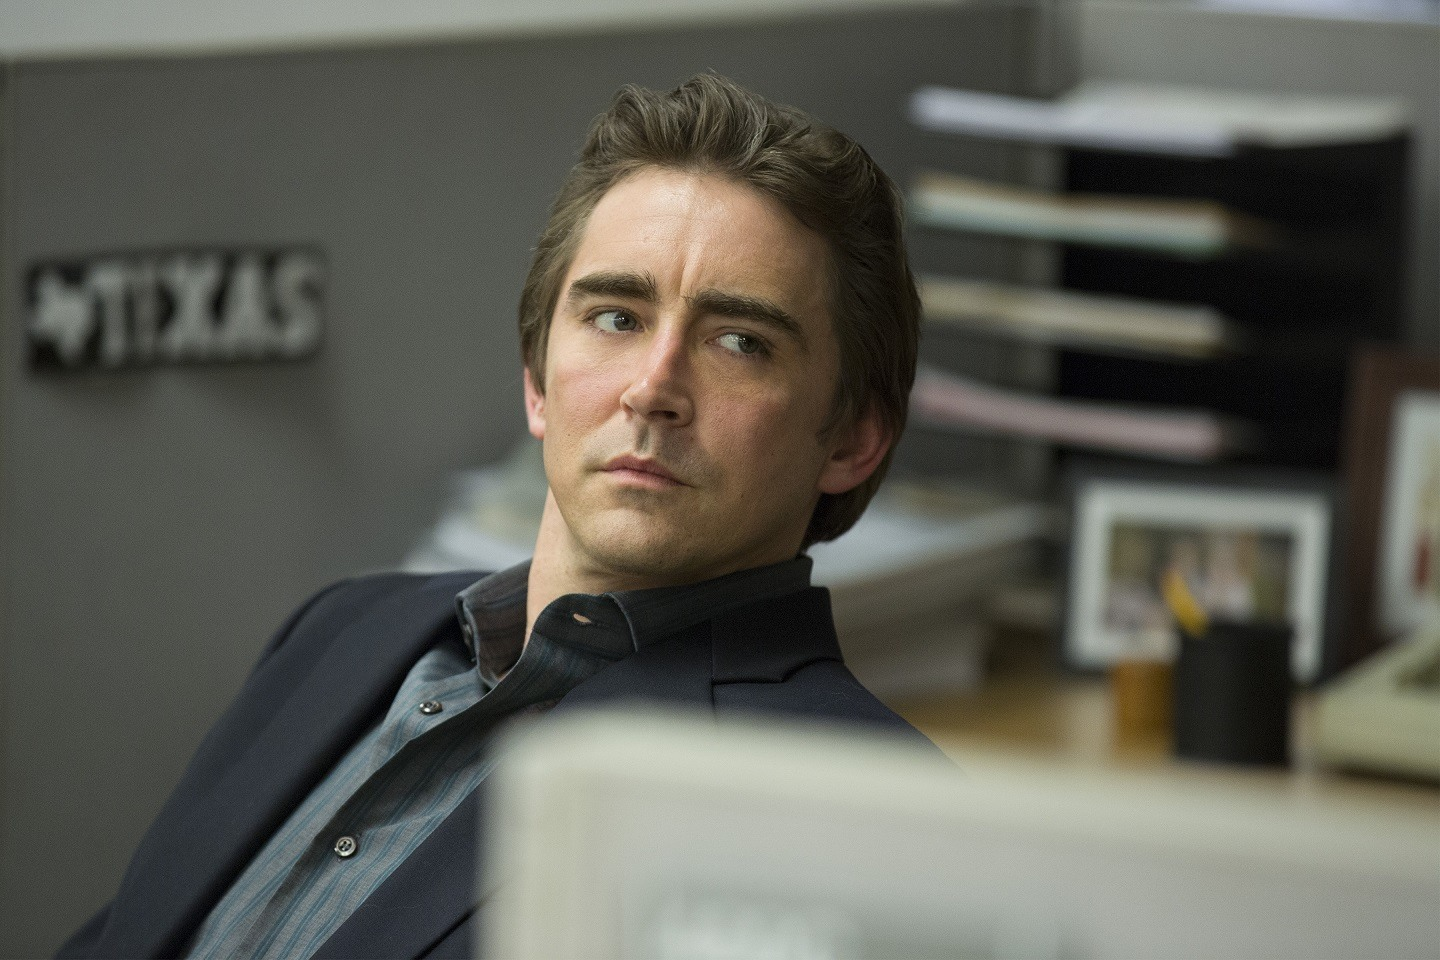 halt & catch fire dvd extra images 2015